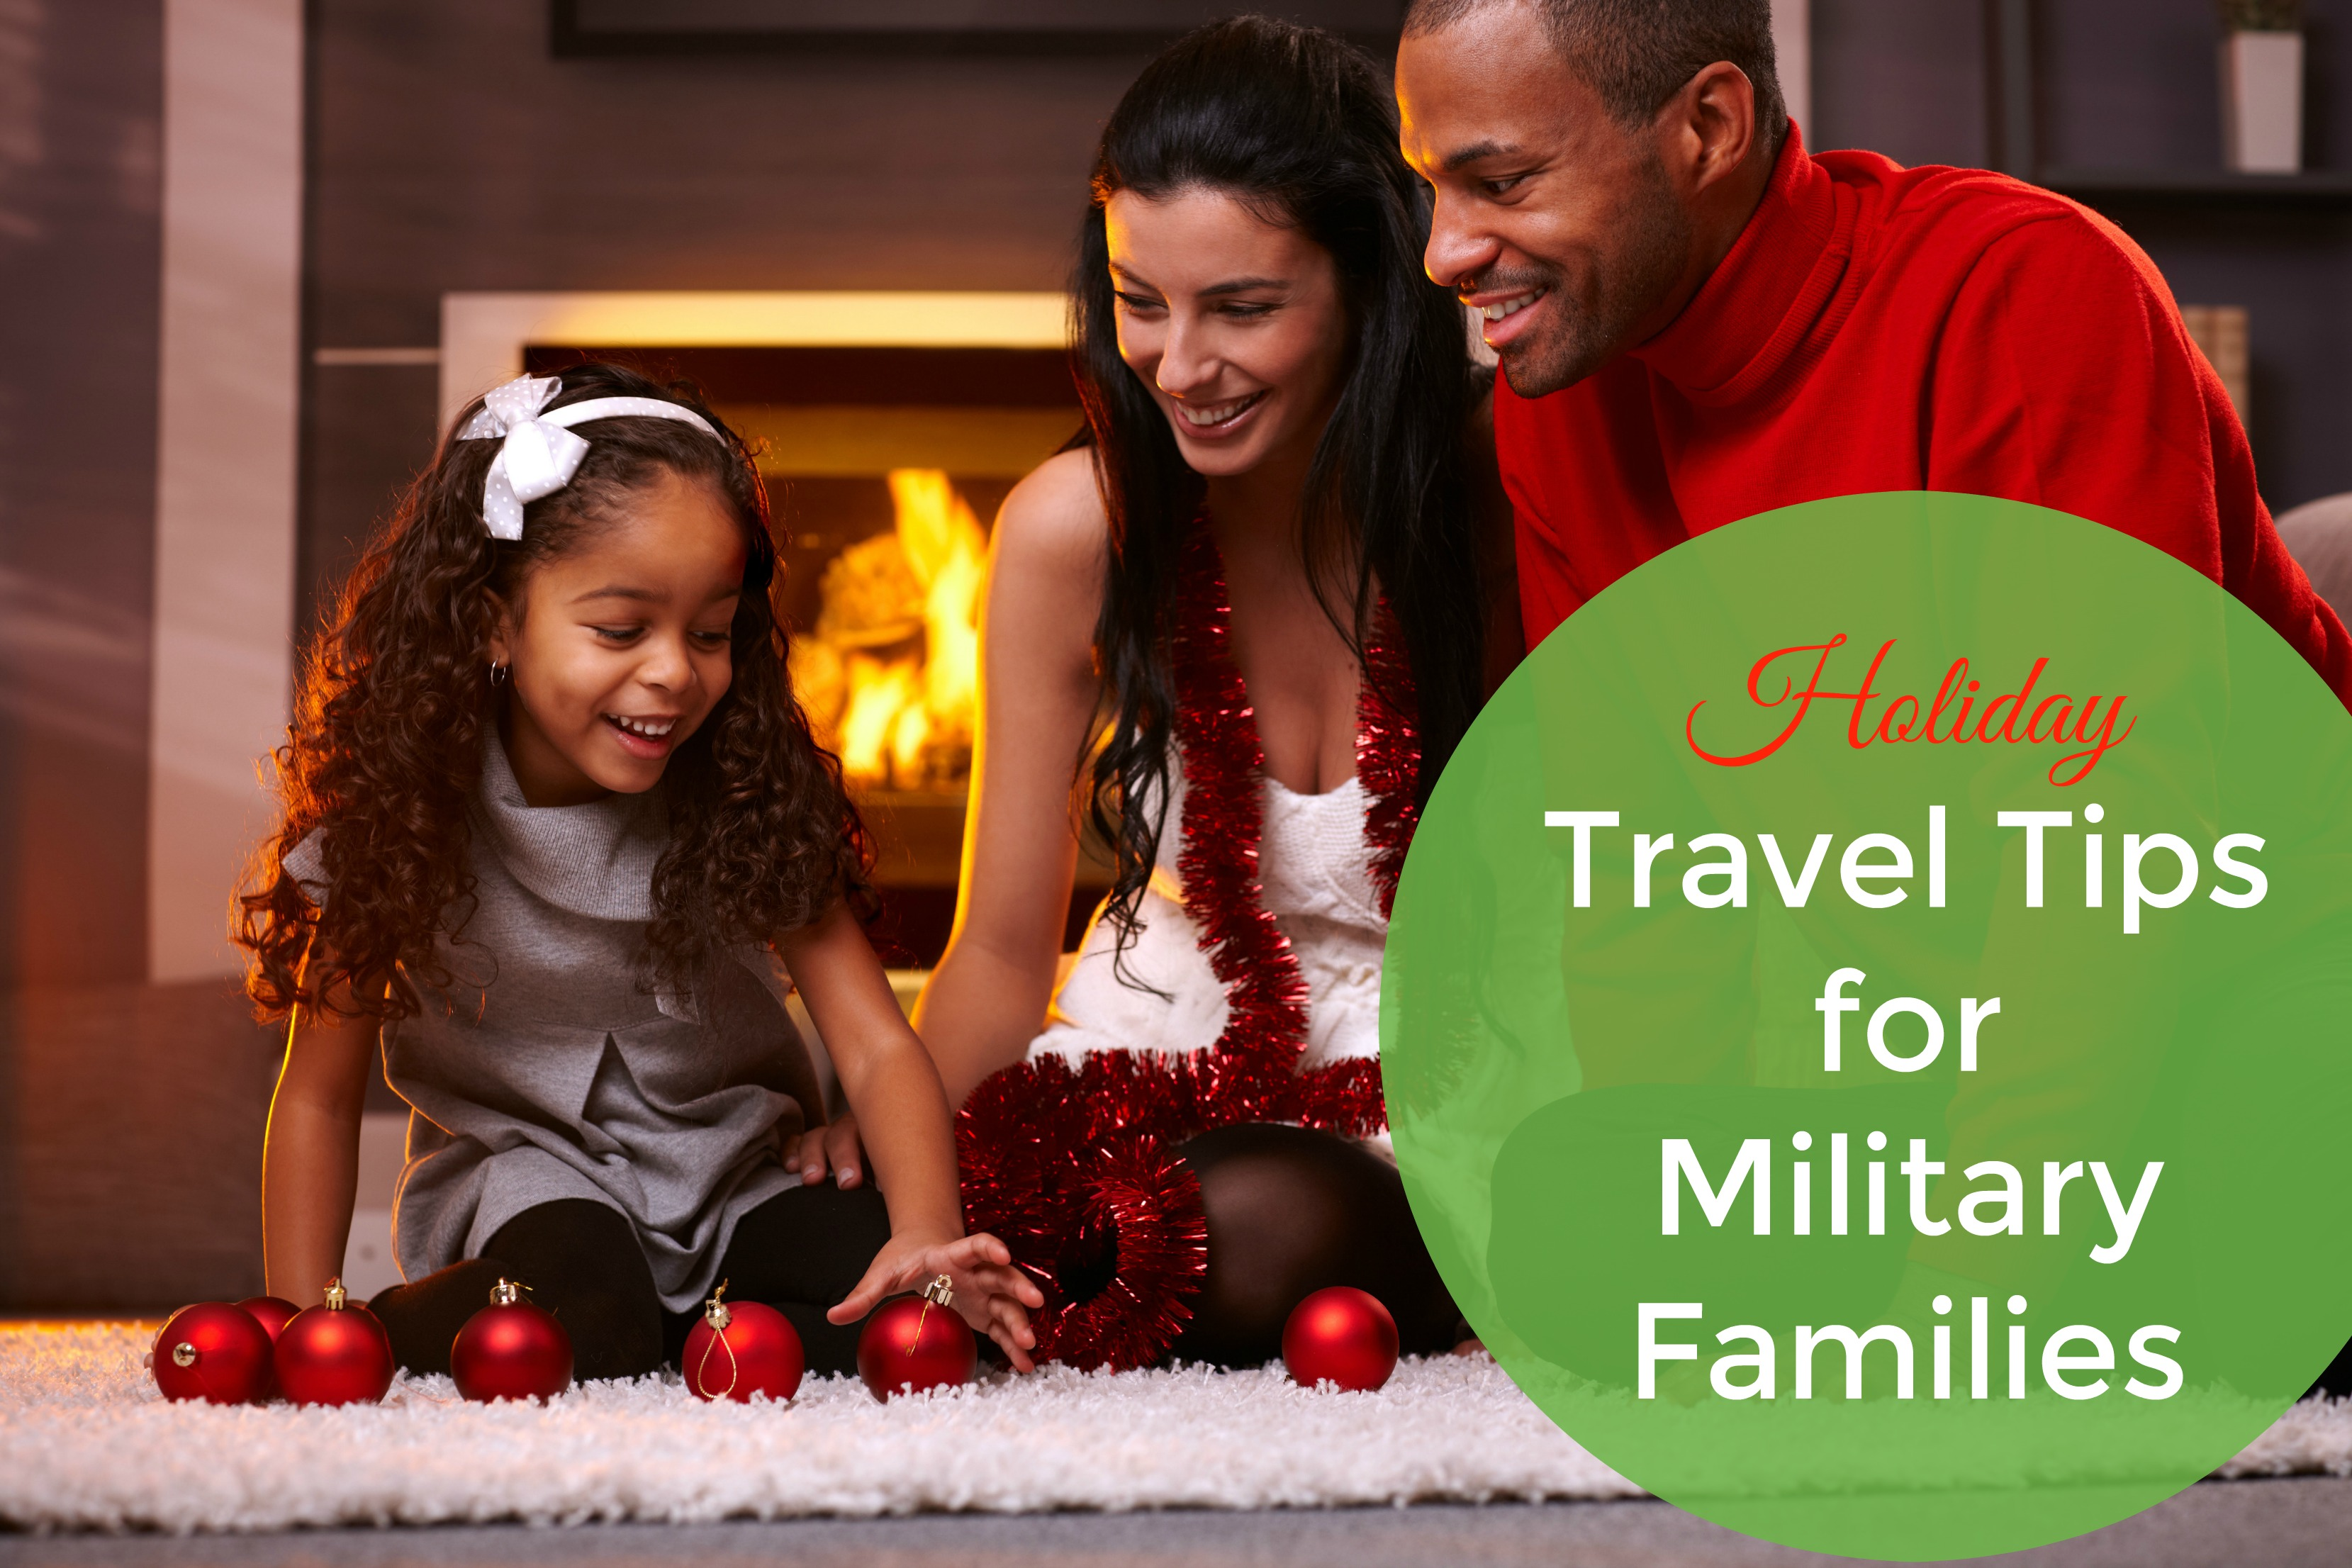 Holiday Travel Tips for Military Families